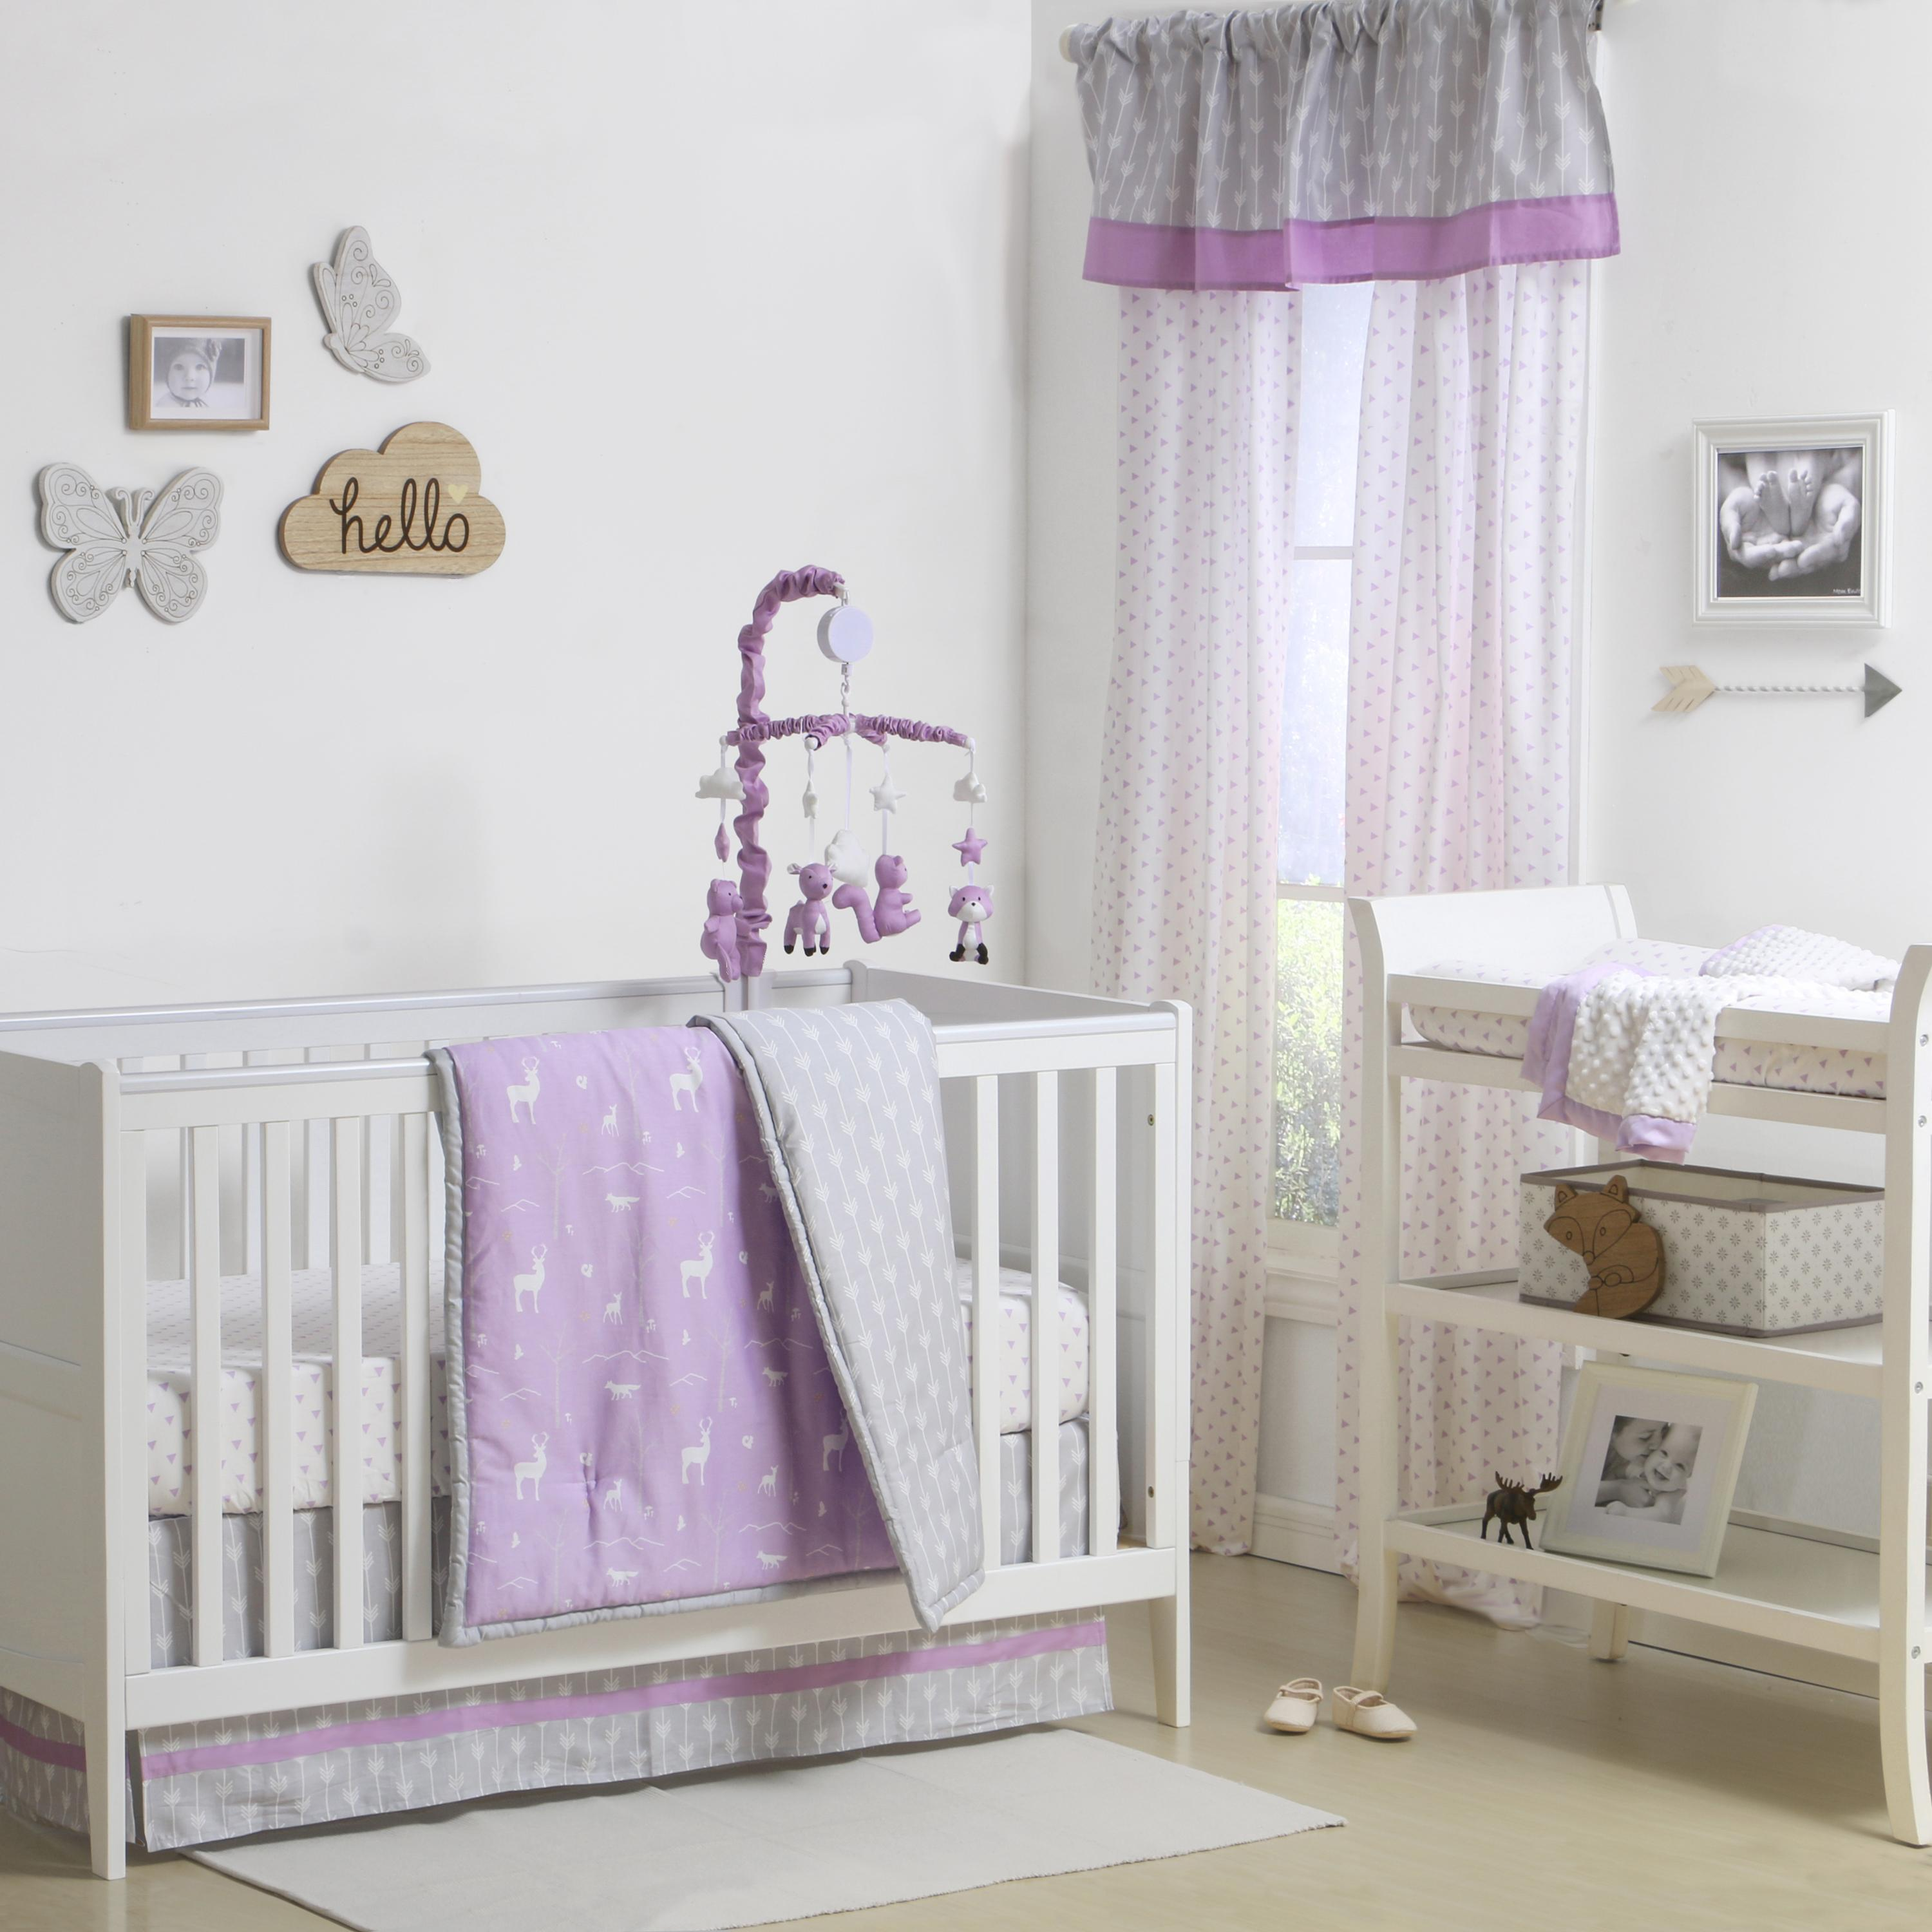 for set from fresh three tier cribs minimalis solid gender bedding natural neutral of linen dust white new skirt crib mint ruffle